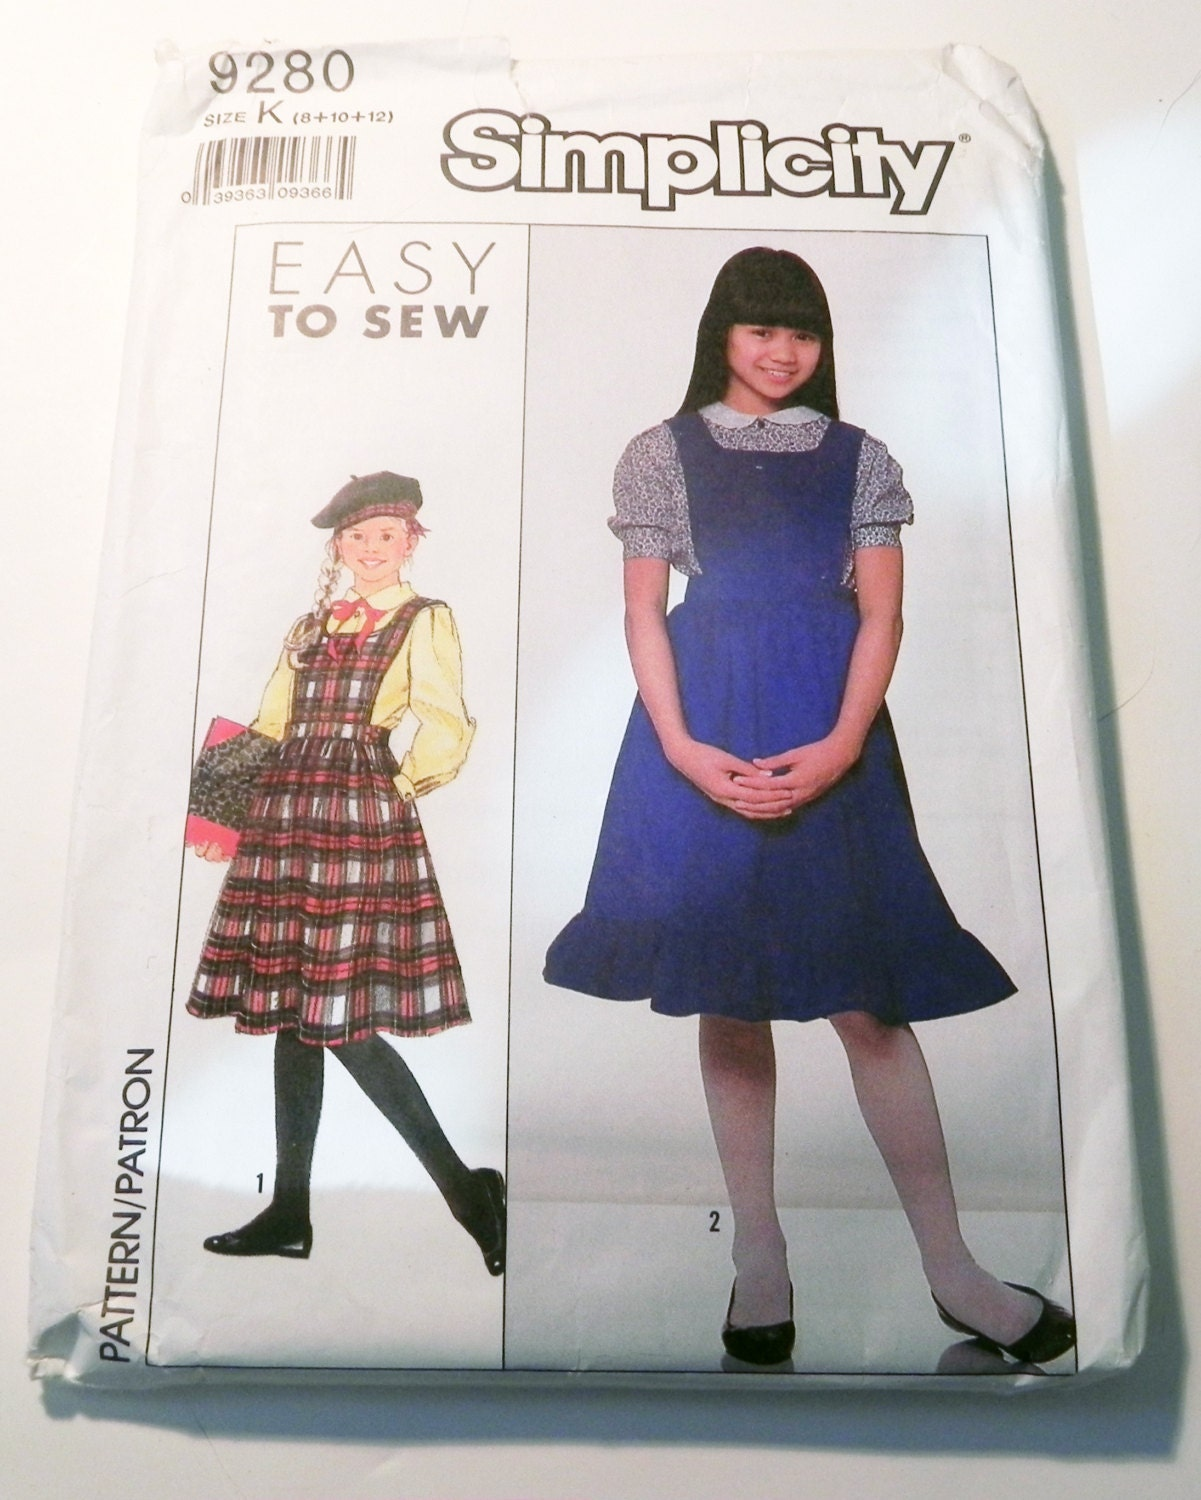 Rc204 late elizabethan closed loose gown kirtle and sleeves 1980s school uniform jumper blouse long short sleeves sewing pattern simplicity 9280 size 8 10 12 chest bust 27 285 30 uncut ff jeuxipadfo Images